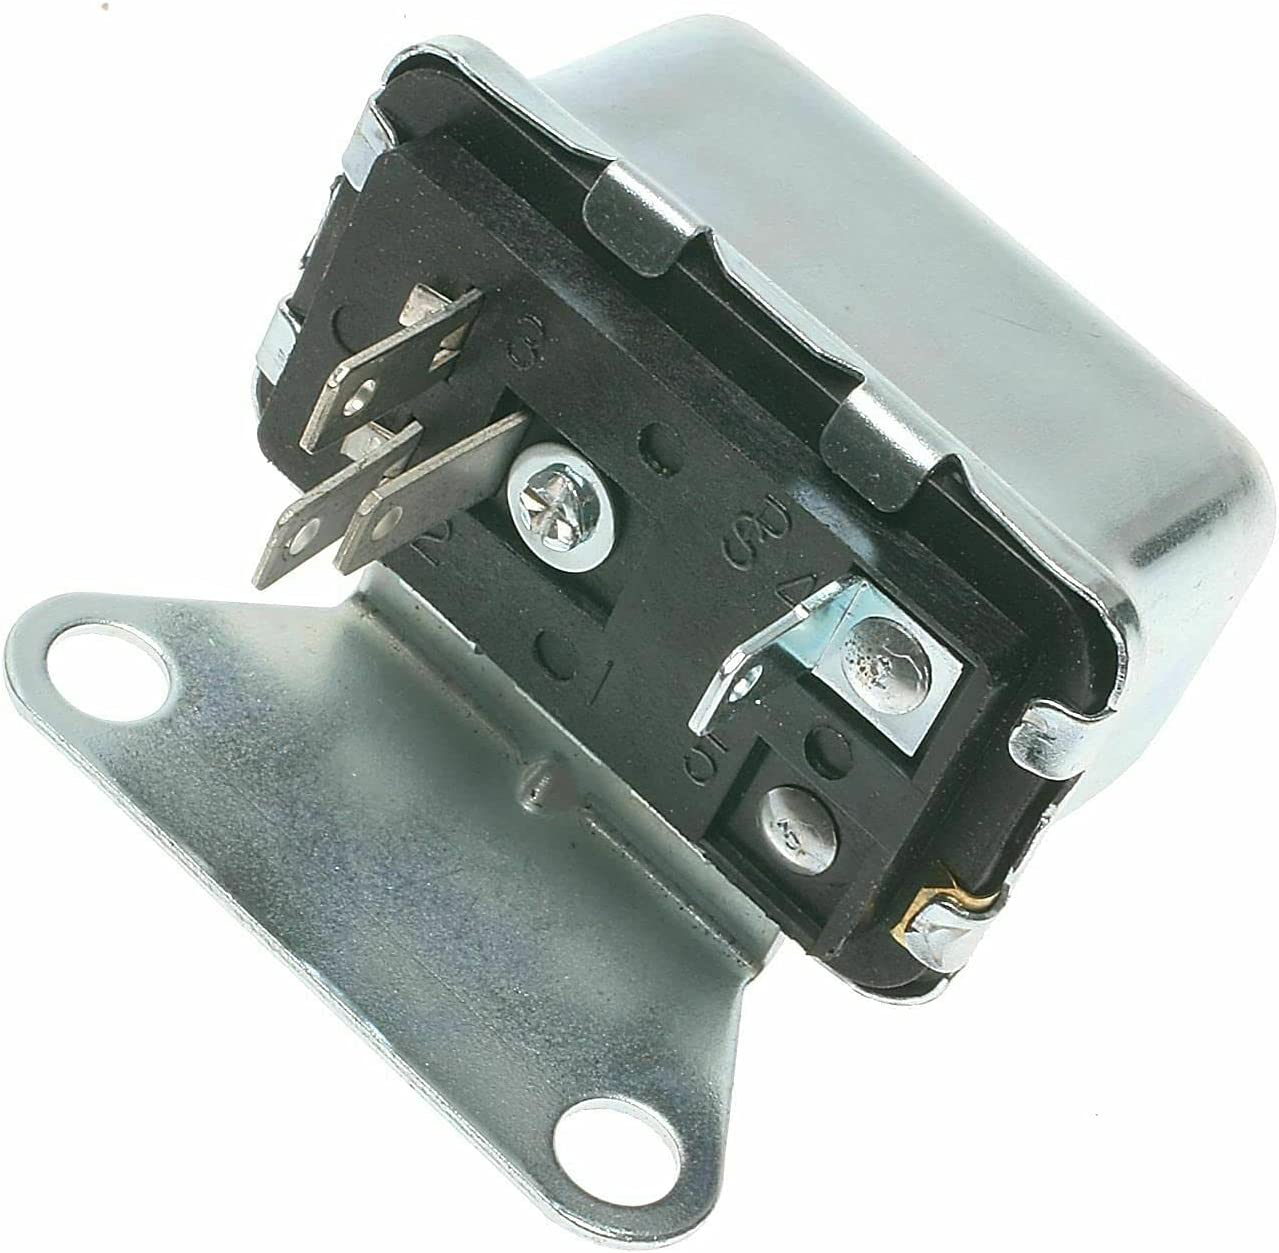 National uniform free shipping Replacement A C Auto Relay Control Temperature Online limited product